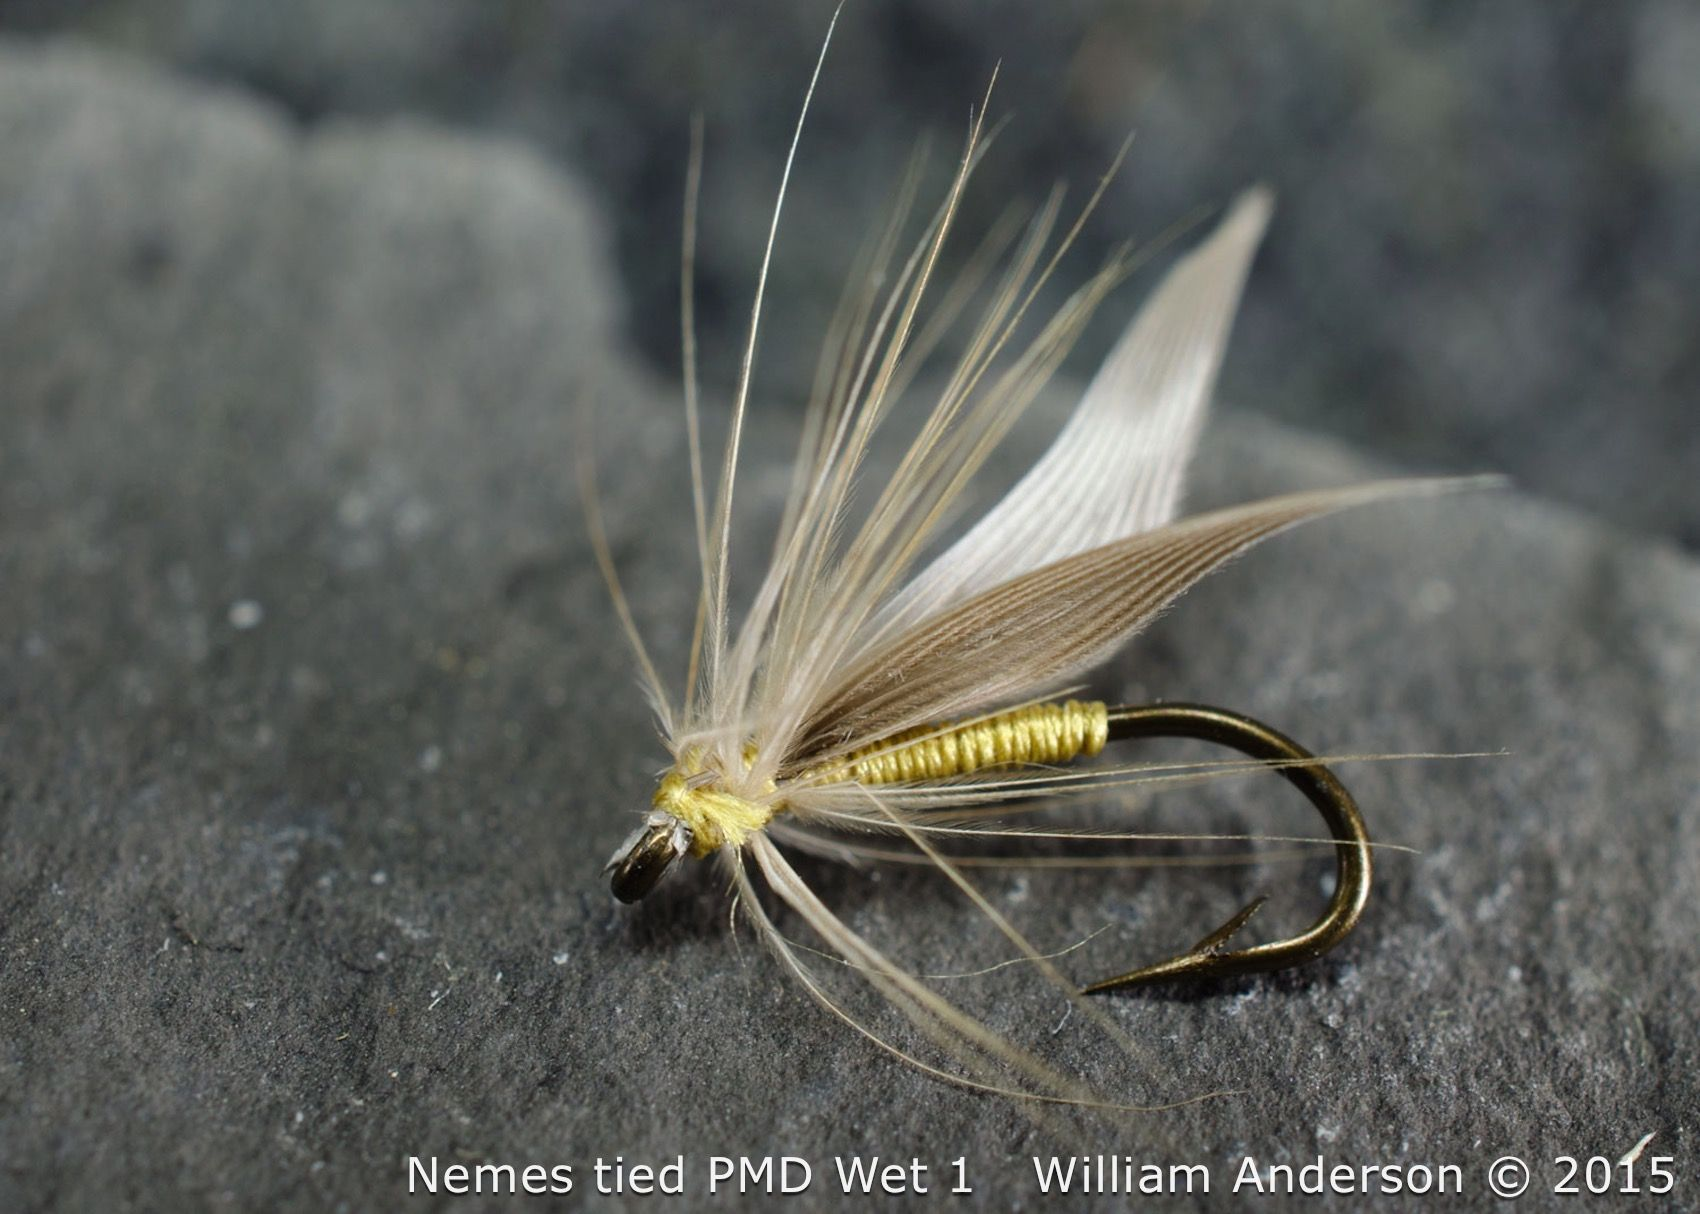 Sylvester Nemes original tied flies. A PMD wet fly imitation. Soft-Hackle Flies, North Country Spiders, Nemes Patterns. WilliamsFavorite.com